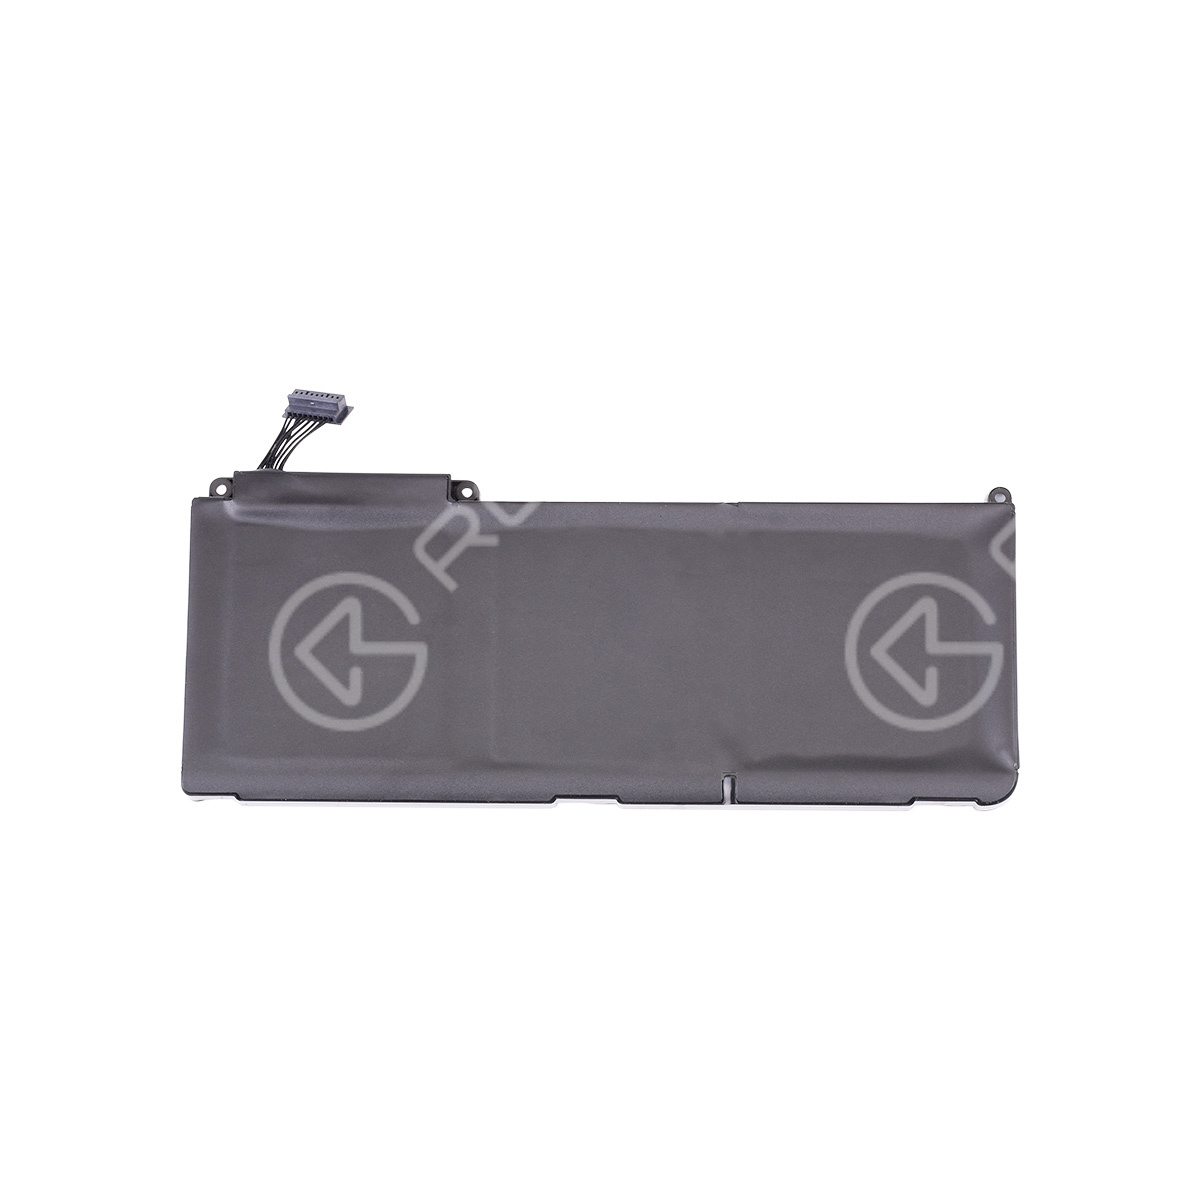 Battery A1331 Compatible For Macbook Pro 13 inch A1342(LATE 2009 - MID 2010)